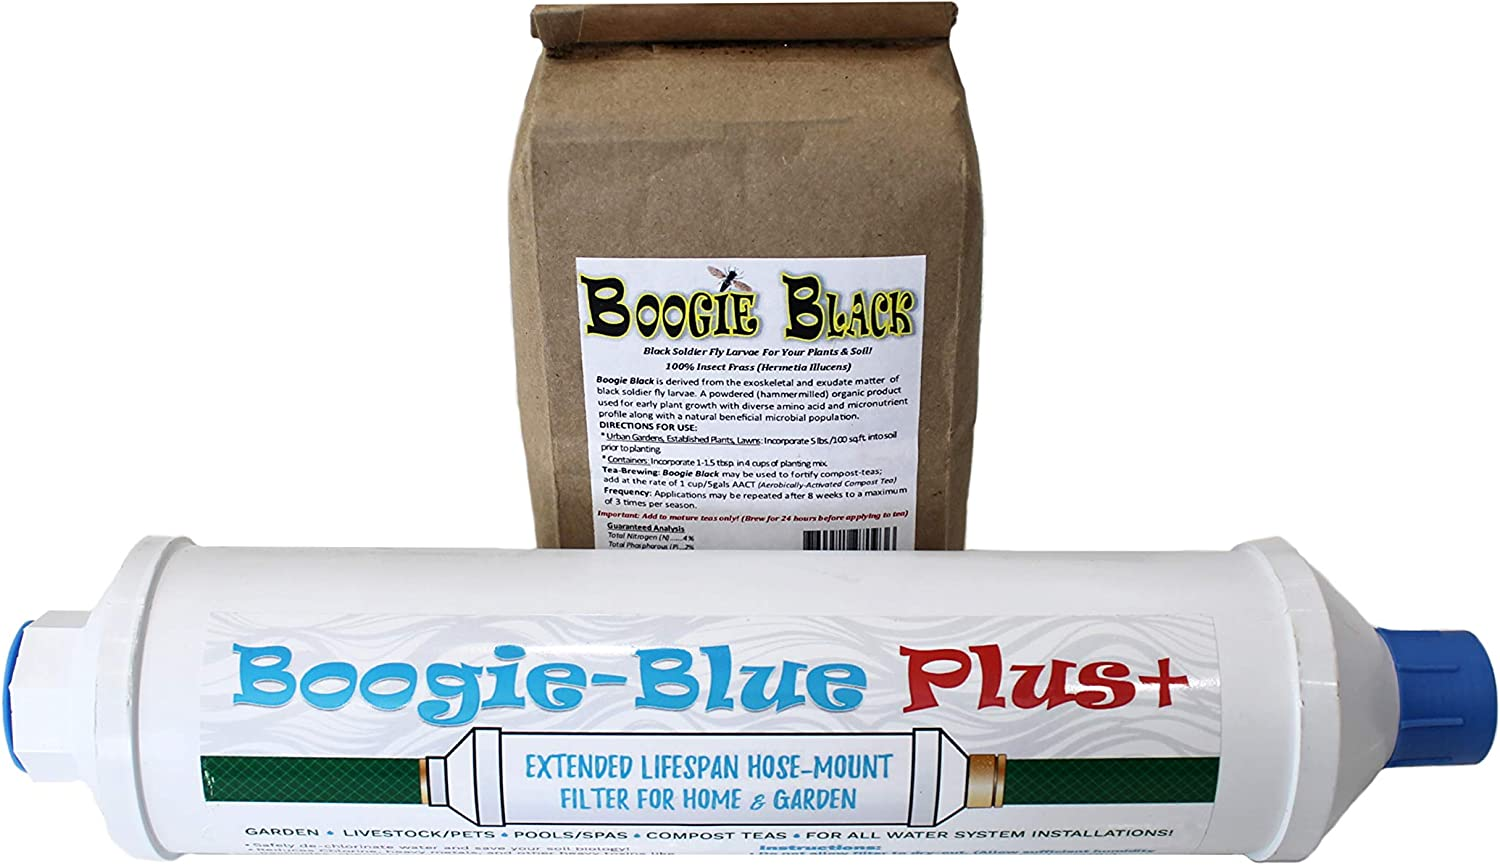 New 2018 Design - Boogie Blue PLUS High Capacity Water Filter for garden, RV and outdoor use -Removes Chlorine, Chloramines, VOCs, Pesticides/Herbicides BUNDLE With Boogie Black Fly Soldier Larvae 1lb